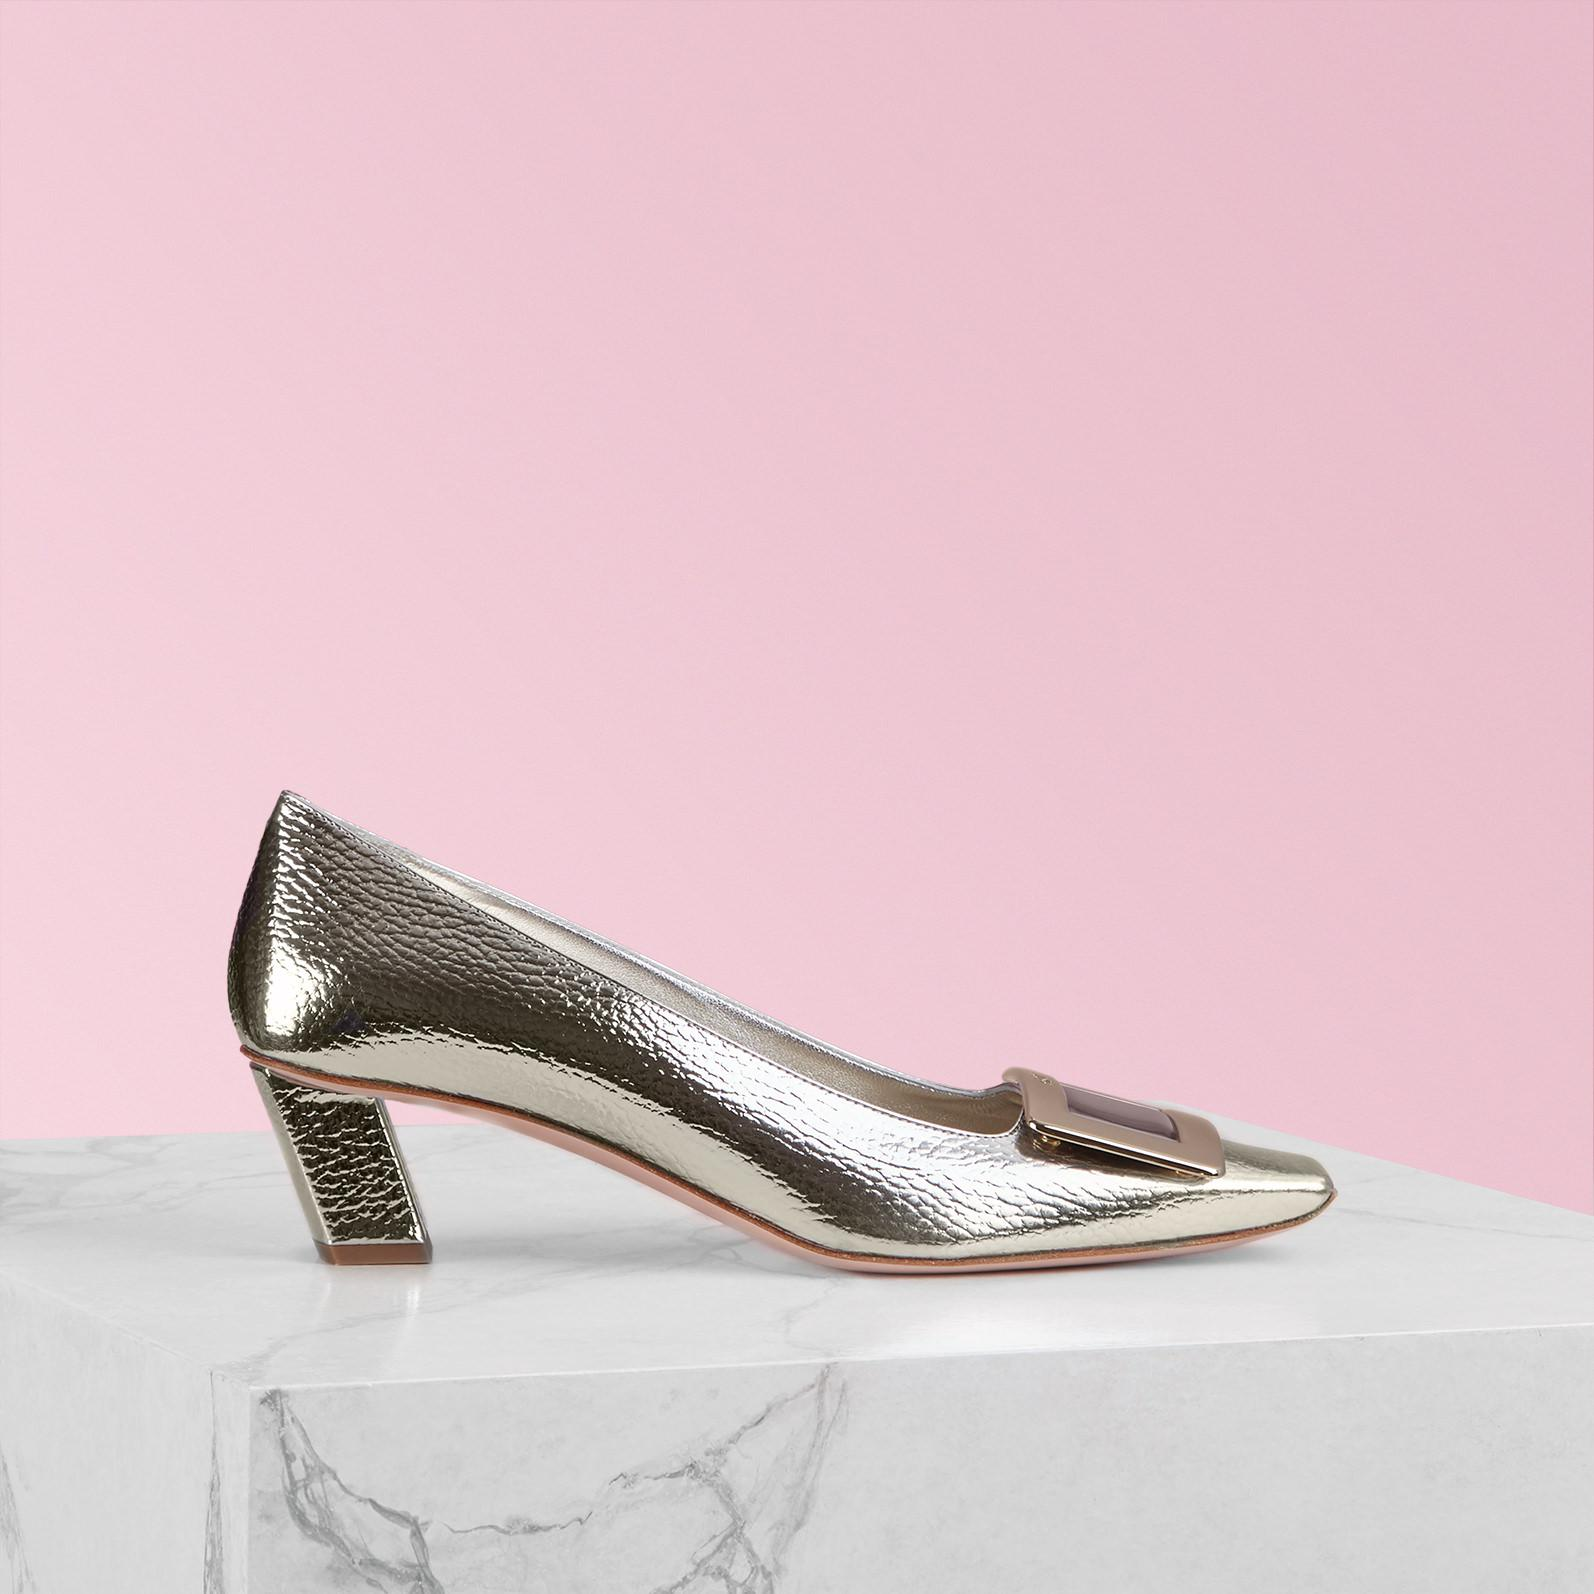 beb5fe79955 Roger Vivier Belle Vivier Metal Buckle Pumps in Metallic - Lyst